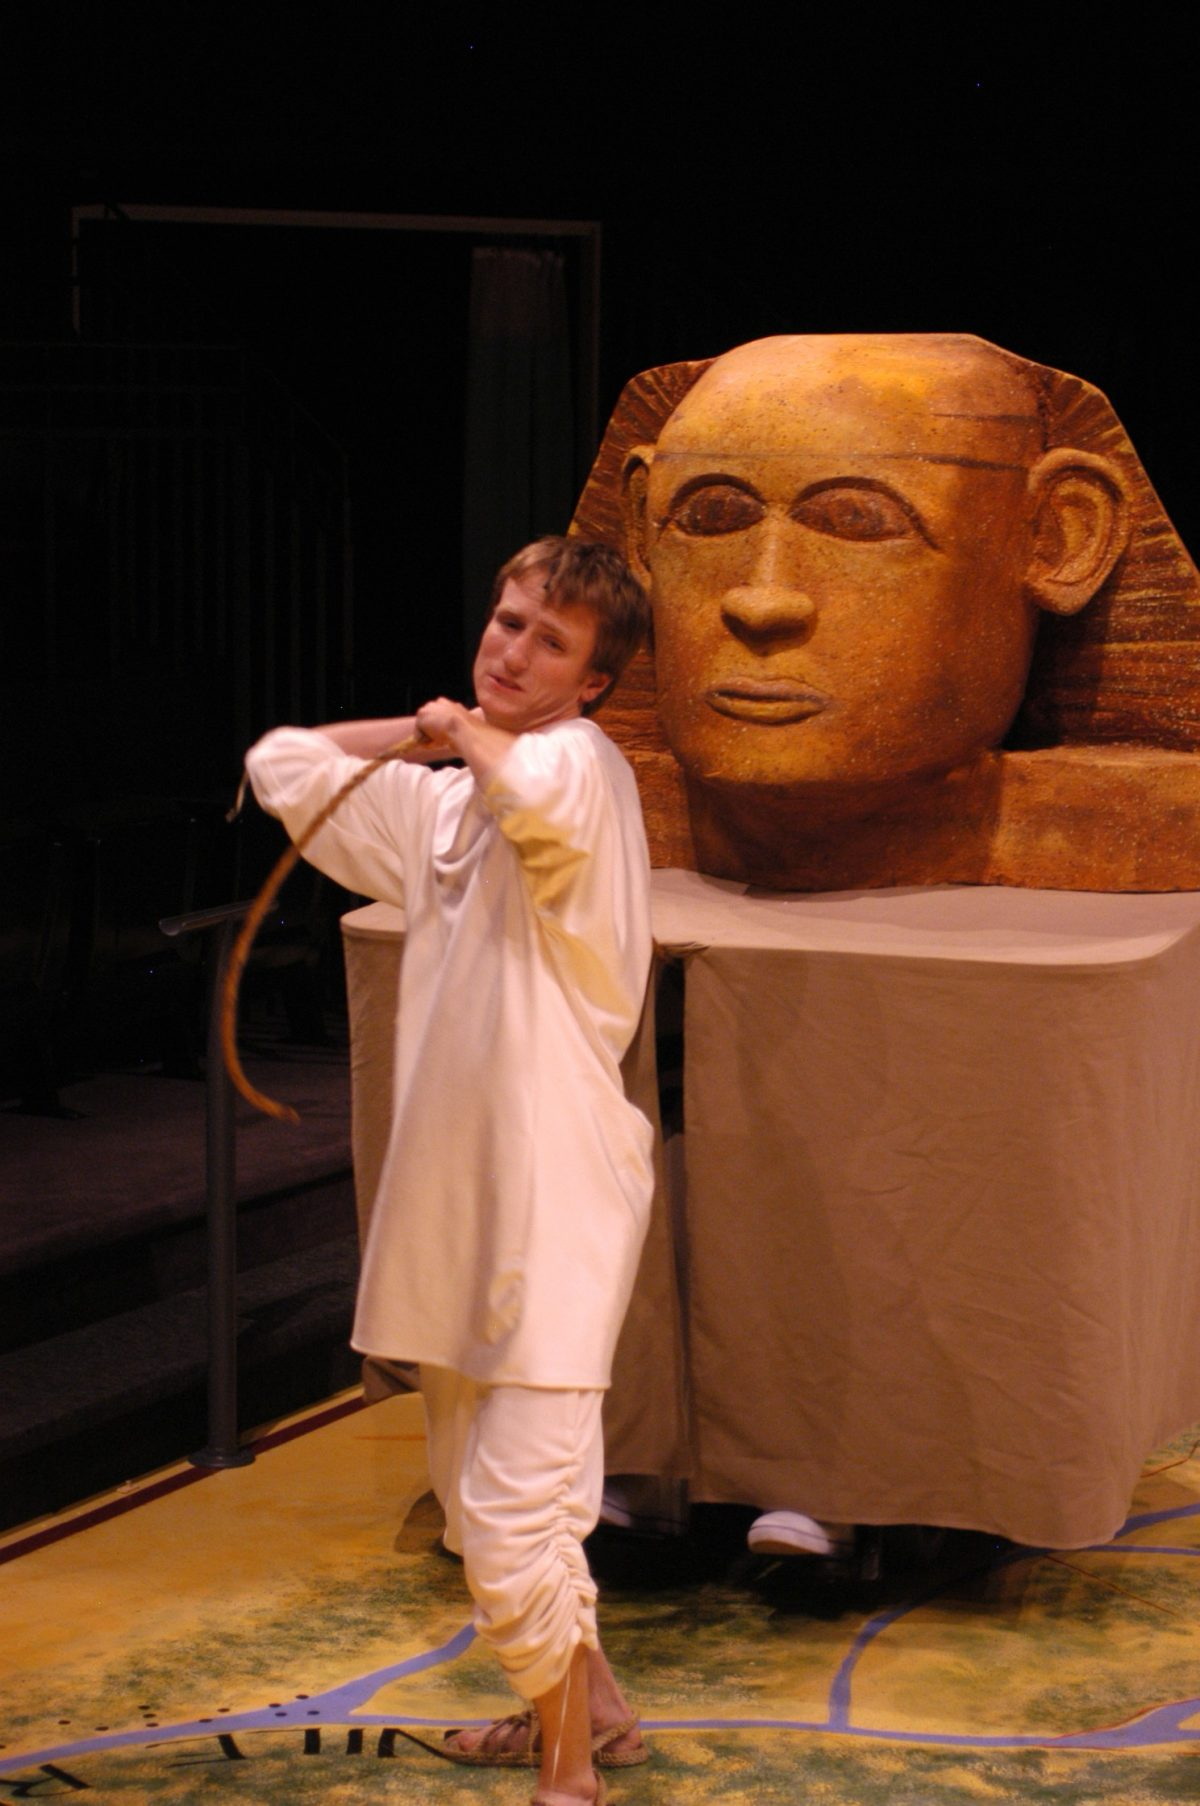 Man in plain white robes pulling a rope attached to a large sculpted head.